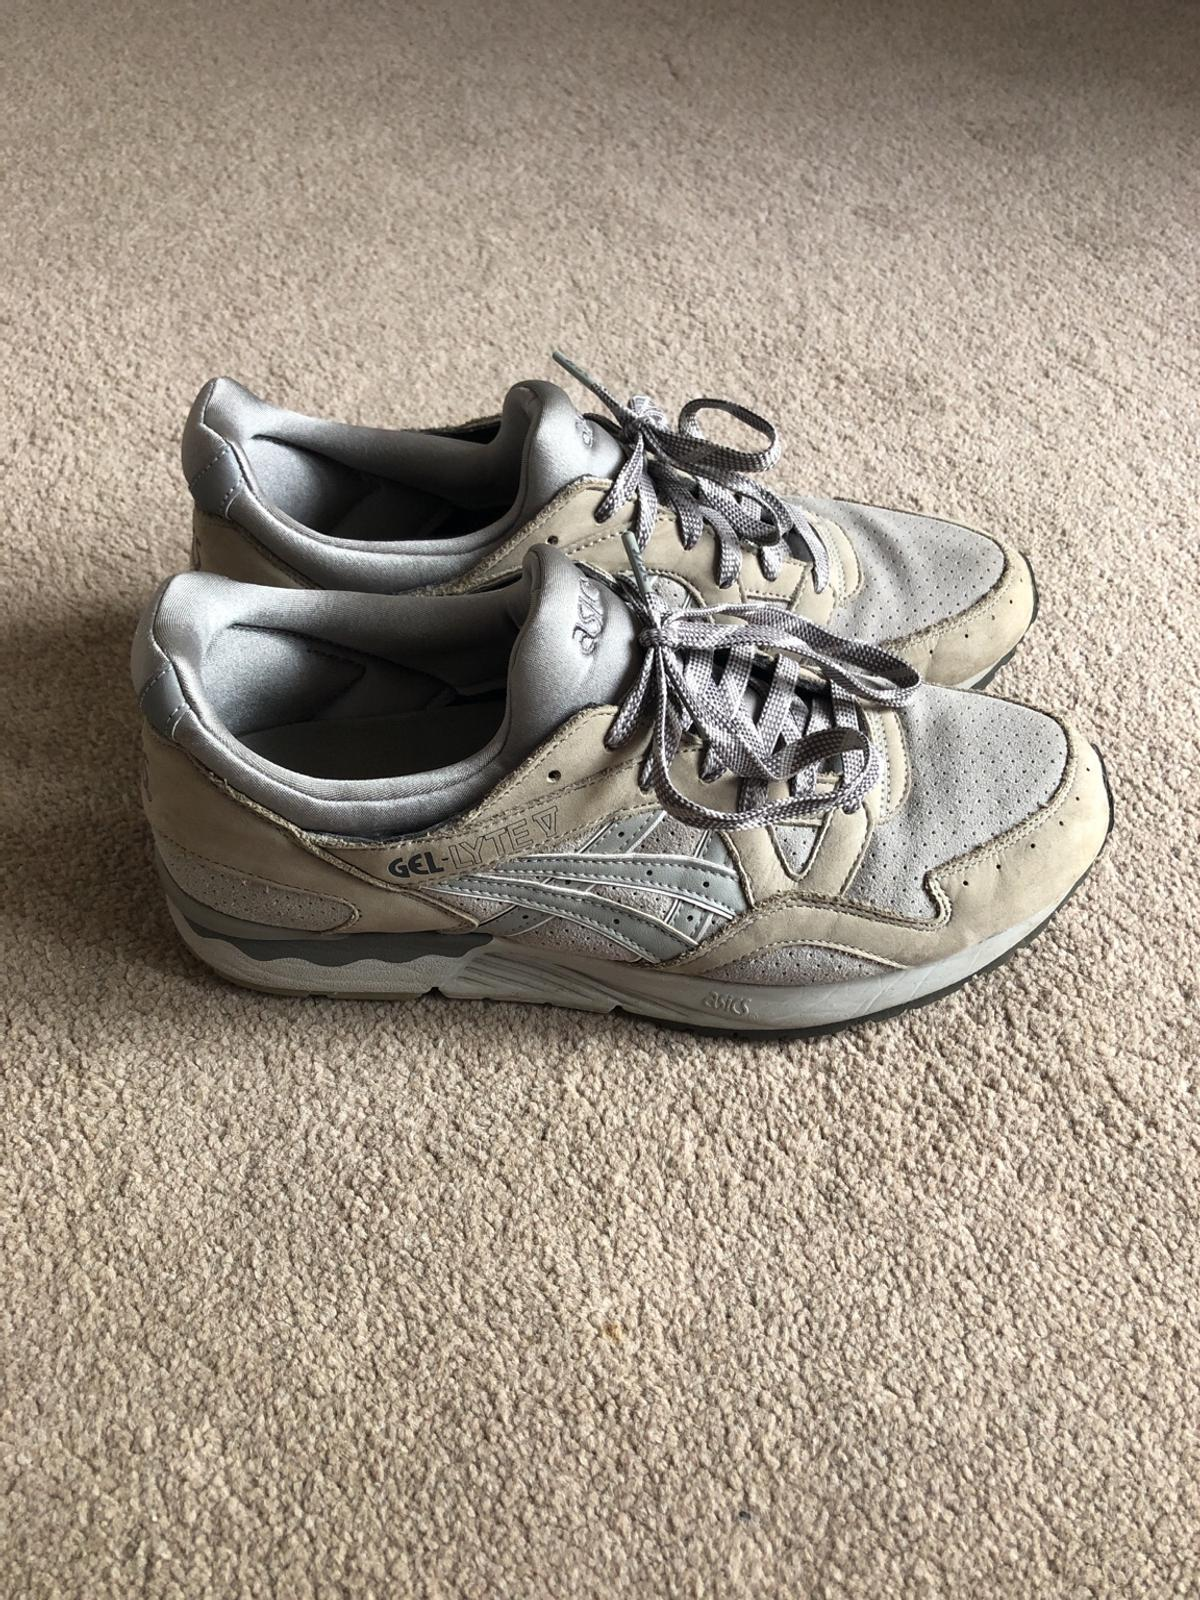 quality design 24f90 b4bcc Asics Gel-Lyte V Trainers - Men's Size 10.5 in DY11 Wyre ...